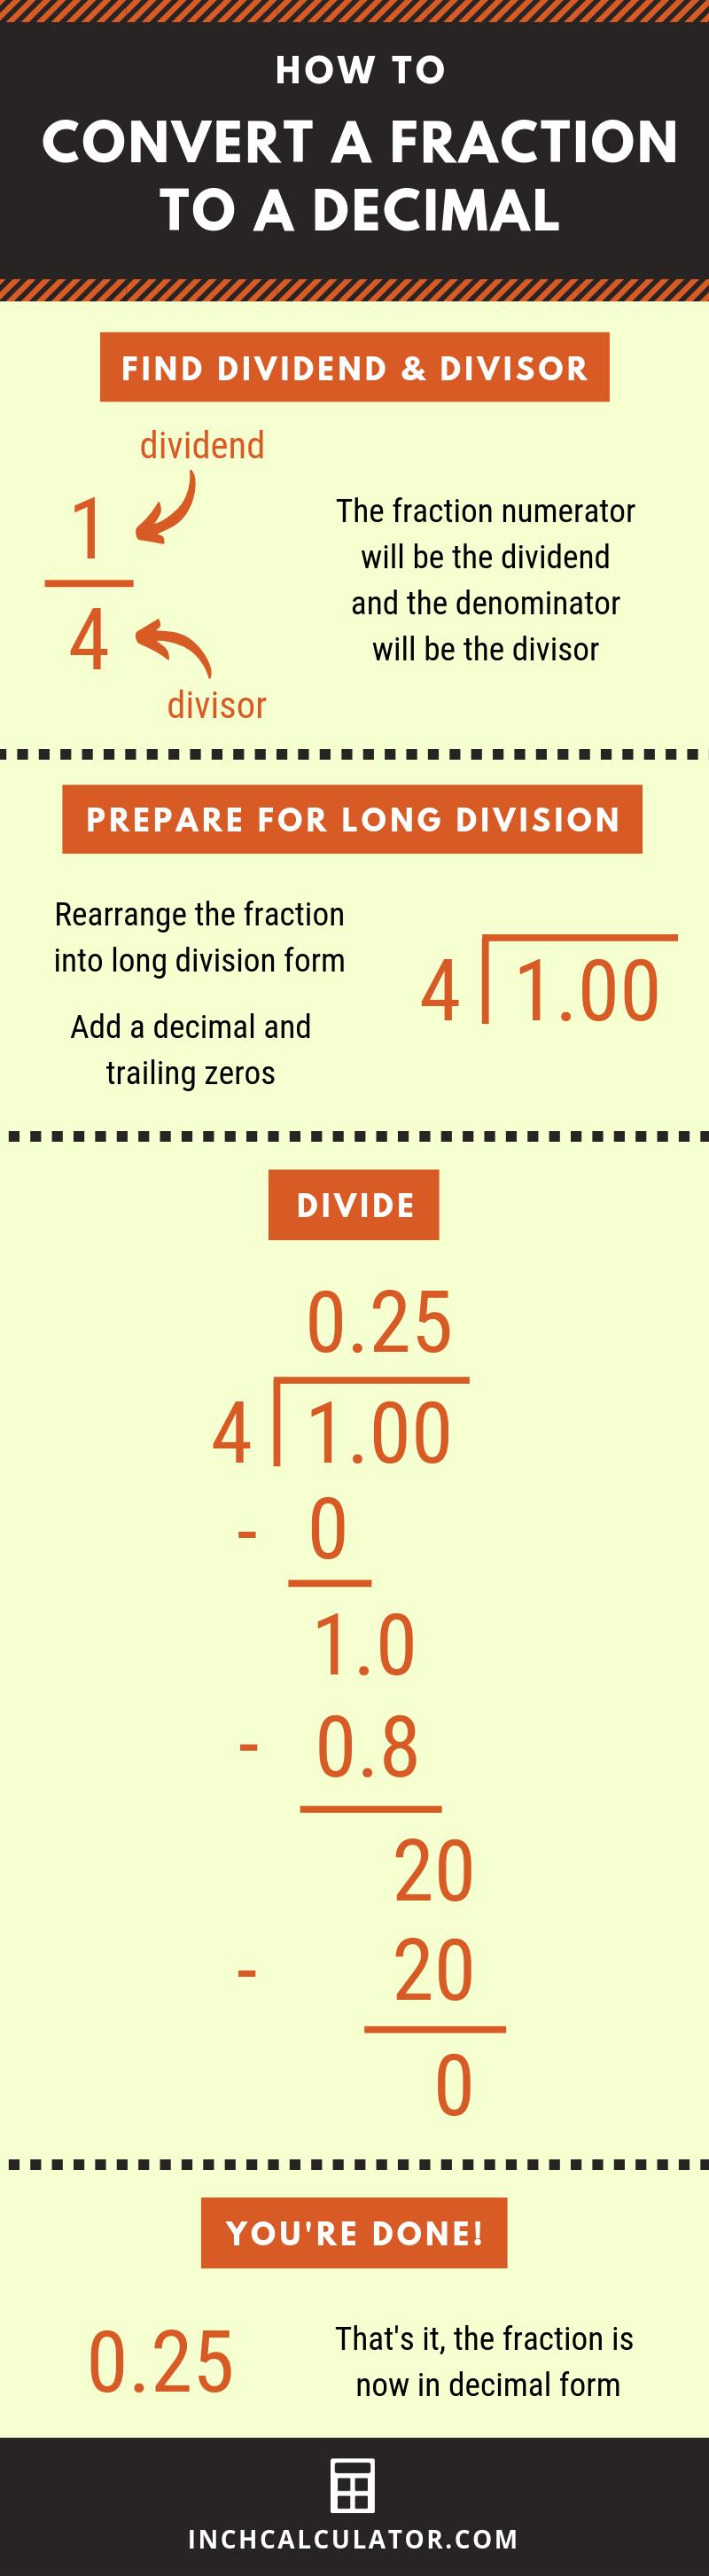 infographic demonstrating how to convert from a fraction to decimal using long division